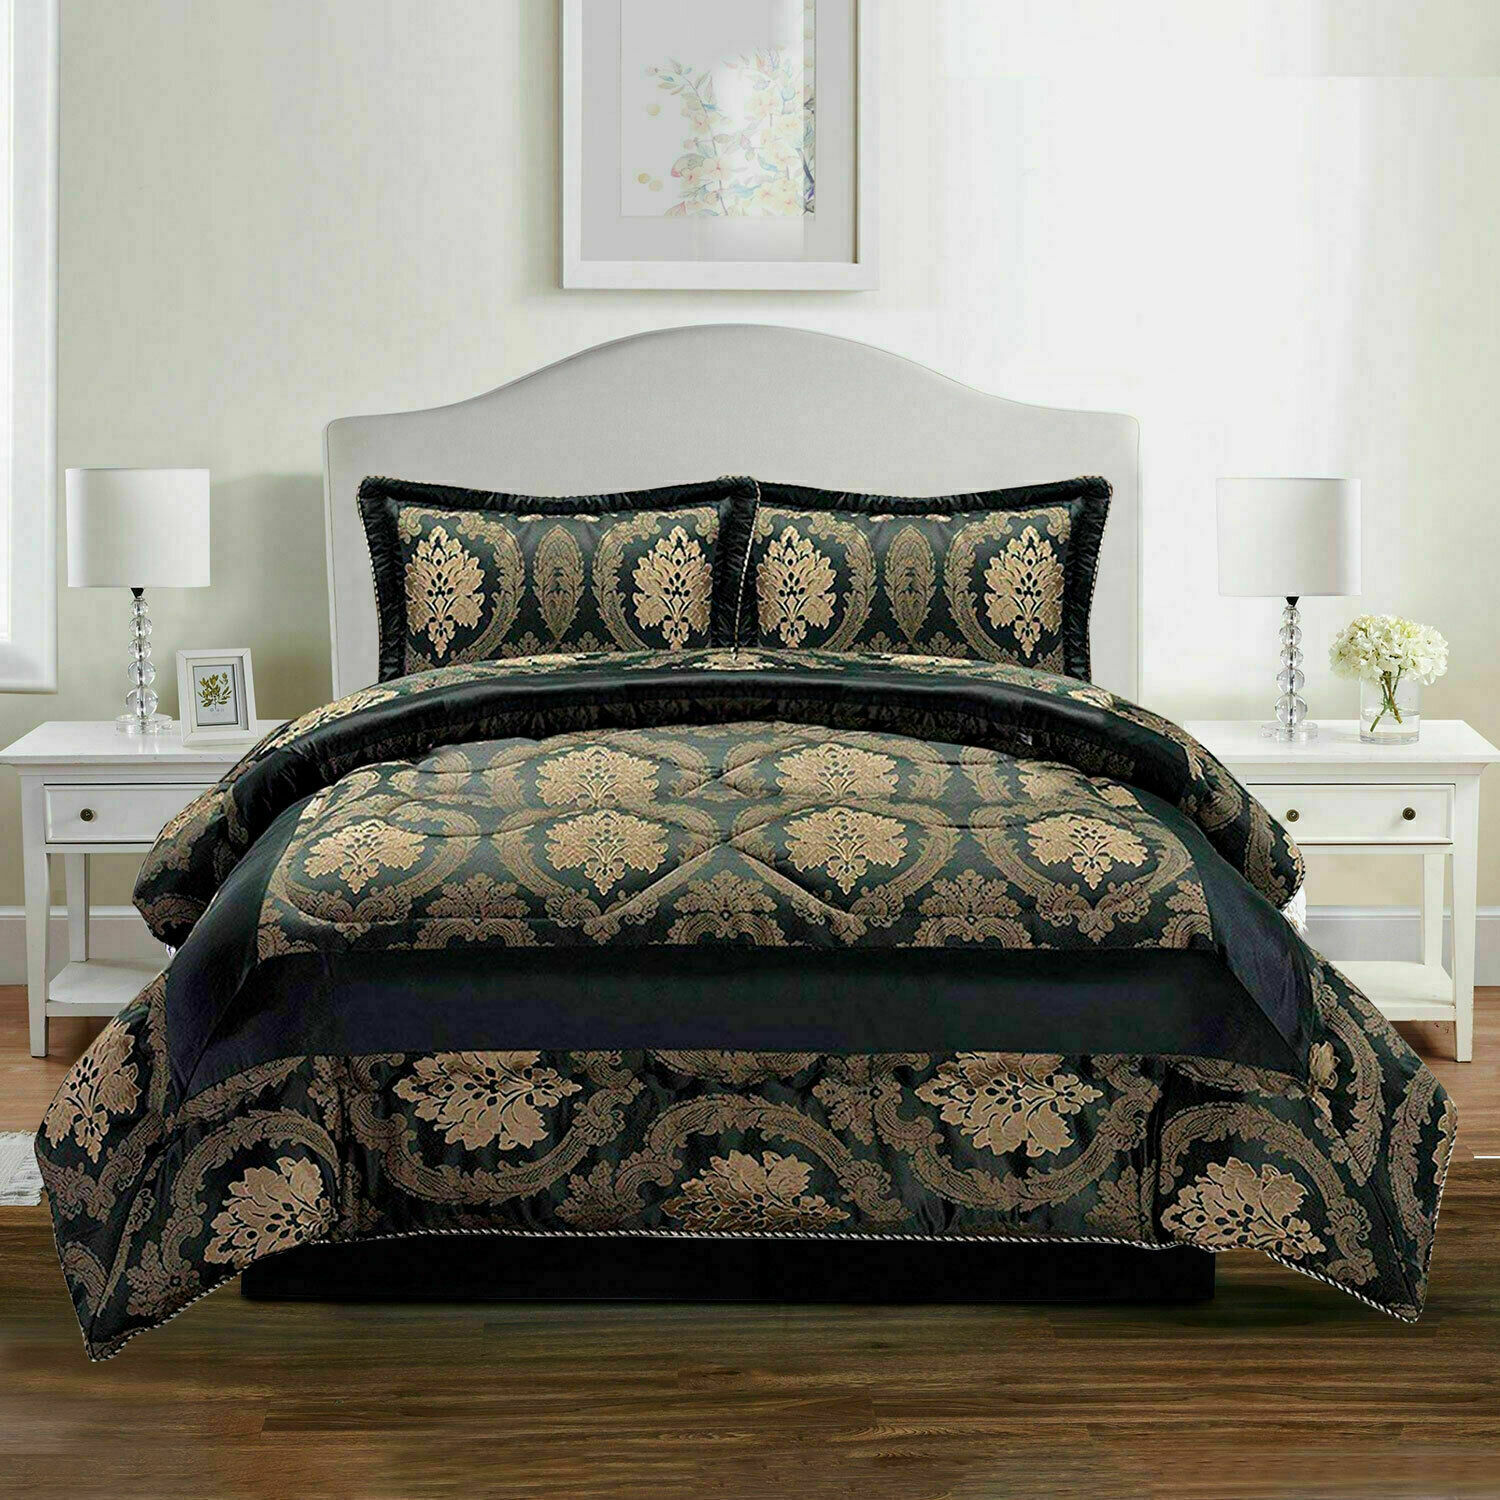 Luxury 3 Piece Quilted Jacquard Bedspread Single Double King Size Comforter Set